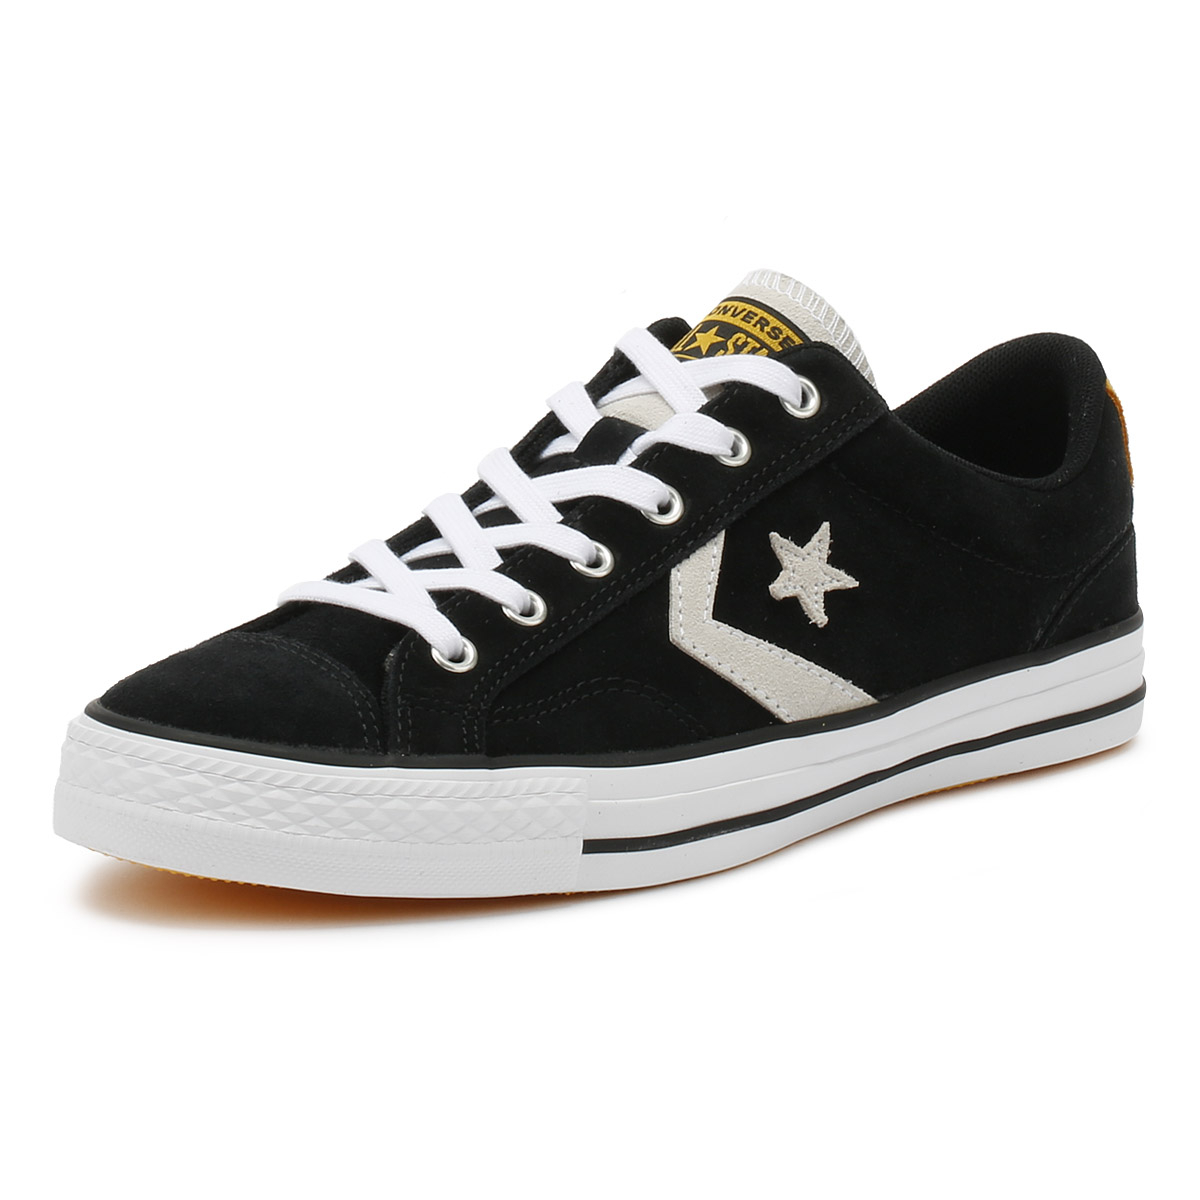 9eeec492af17 Details about Converse Mens Trainers Black   White Star Player Suede Ox  Sport Casual Shoes